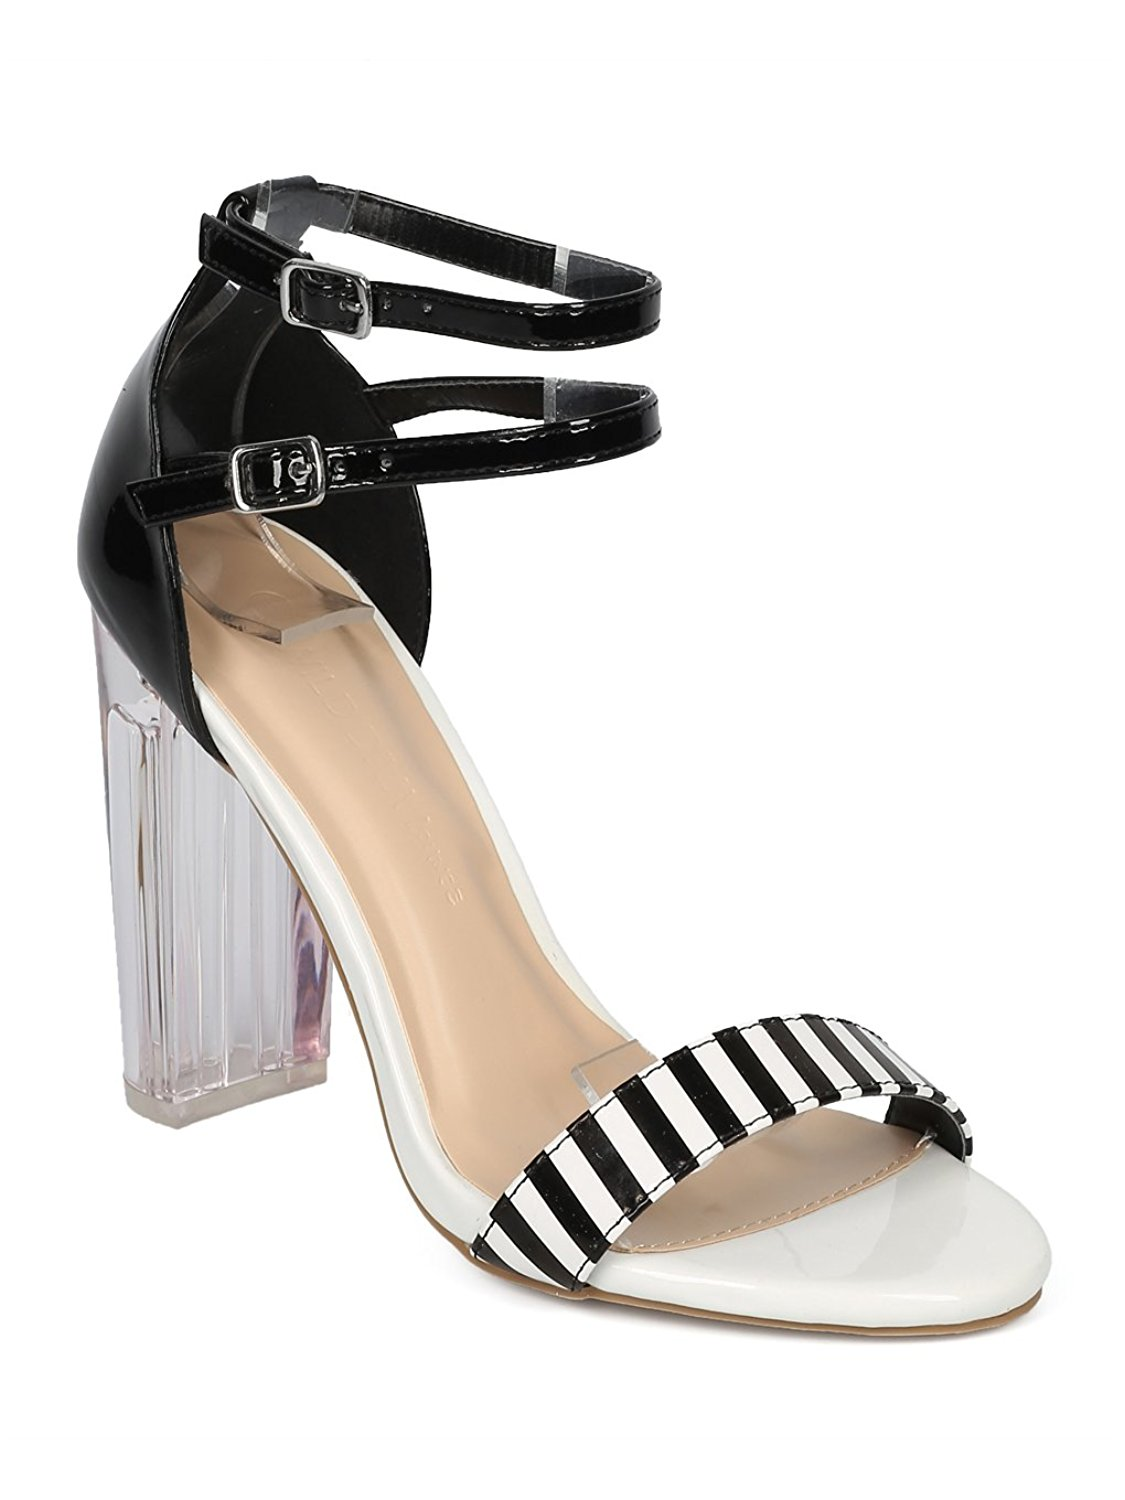 2b1cc4cbc35 Get Quotations · Alrisco Women Lucite Block Heel Sandal - Striped Perspex  Heel Sandal - Double Ankle Strap Chunky